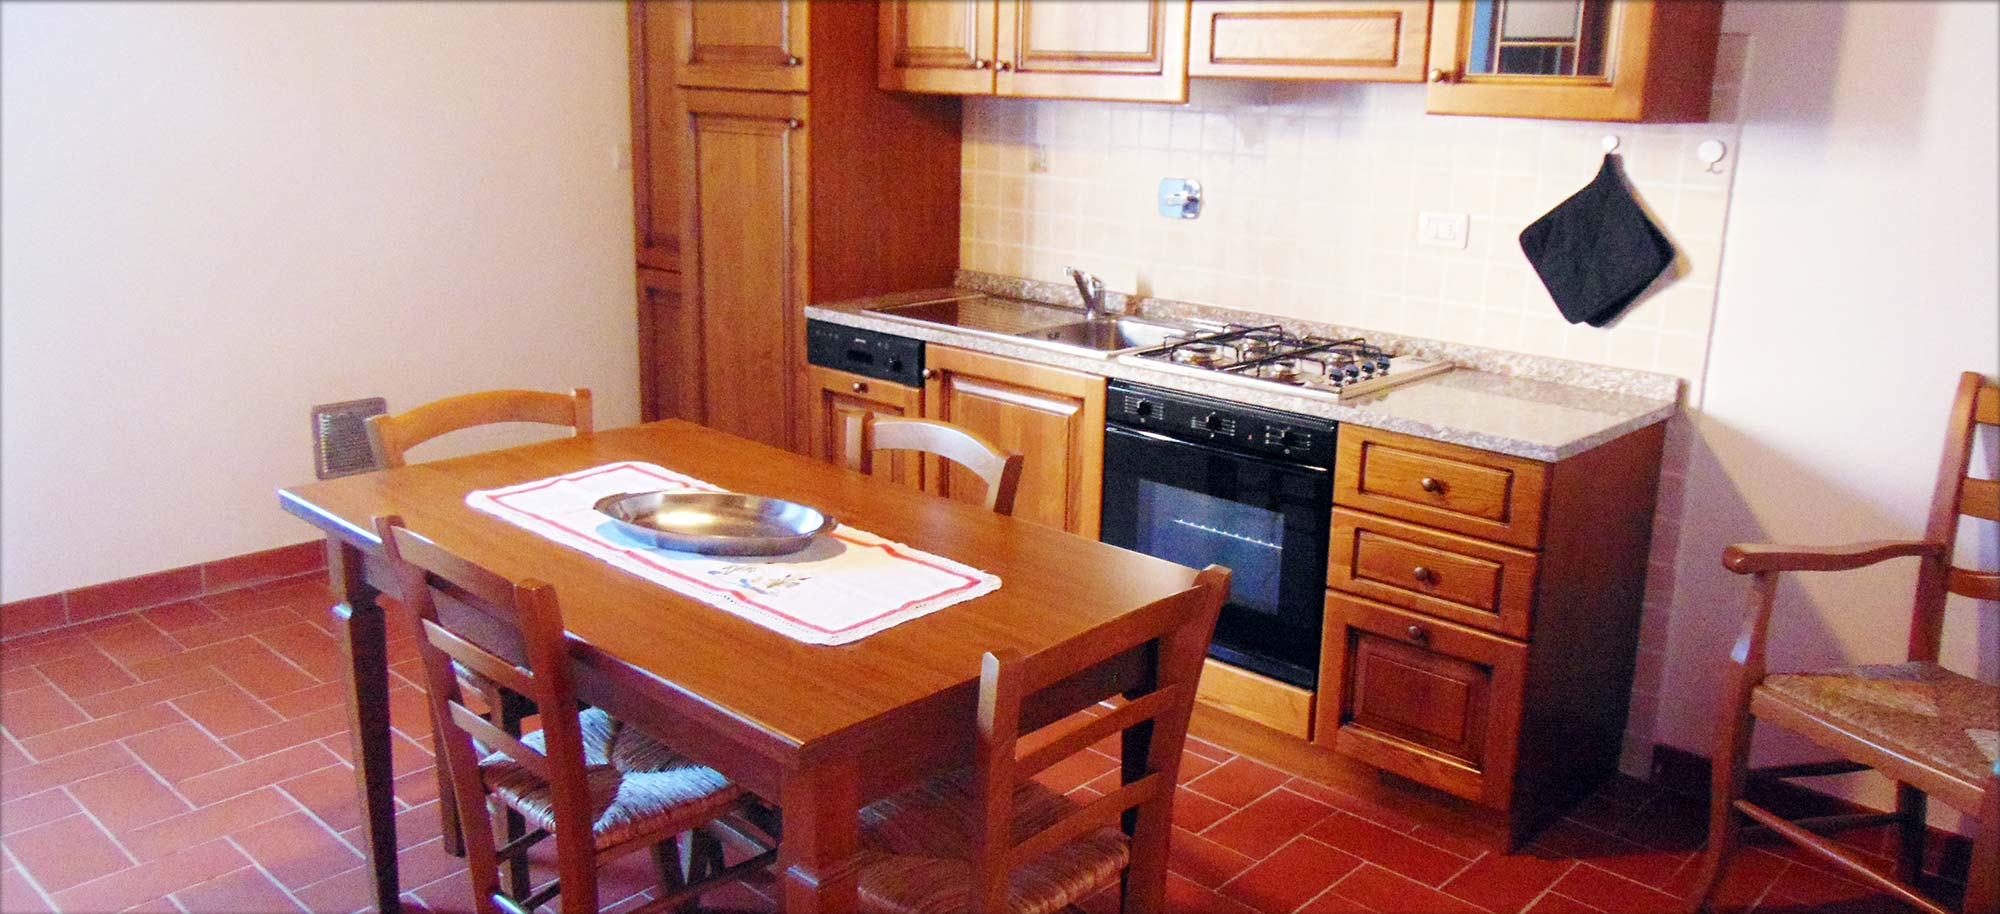 Corte Tommasi - Holiday apartments in Tuscany - 103 - Tuscany apartment with swimming pool